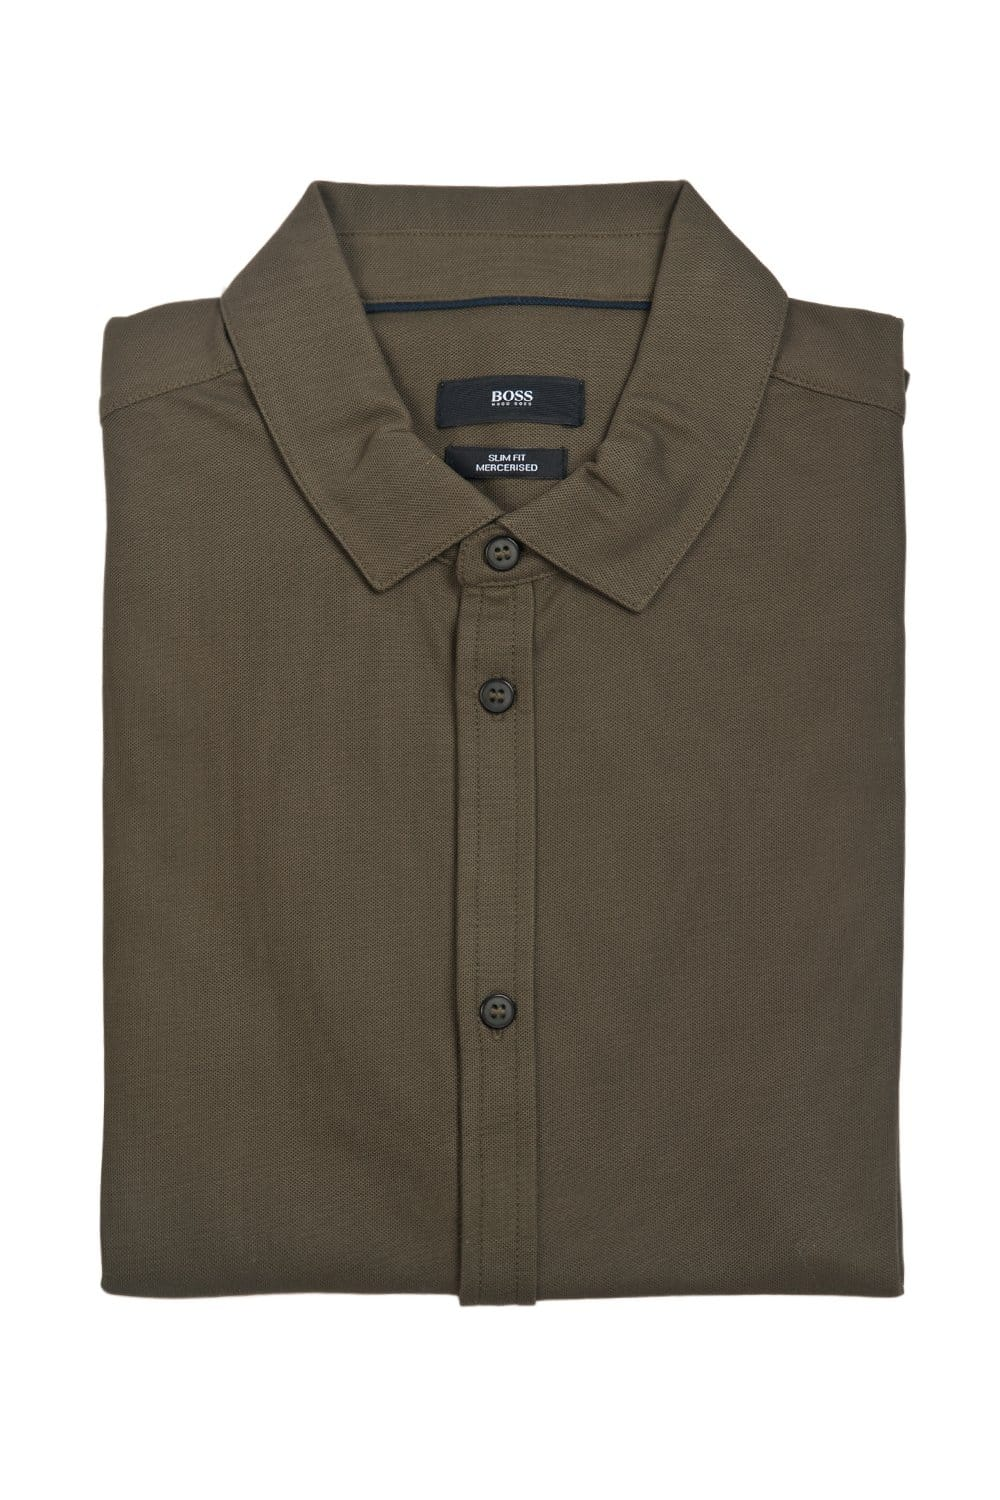 Hugo Boss Slim Fit Polo Shirt In Grey White And Khaki